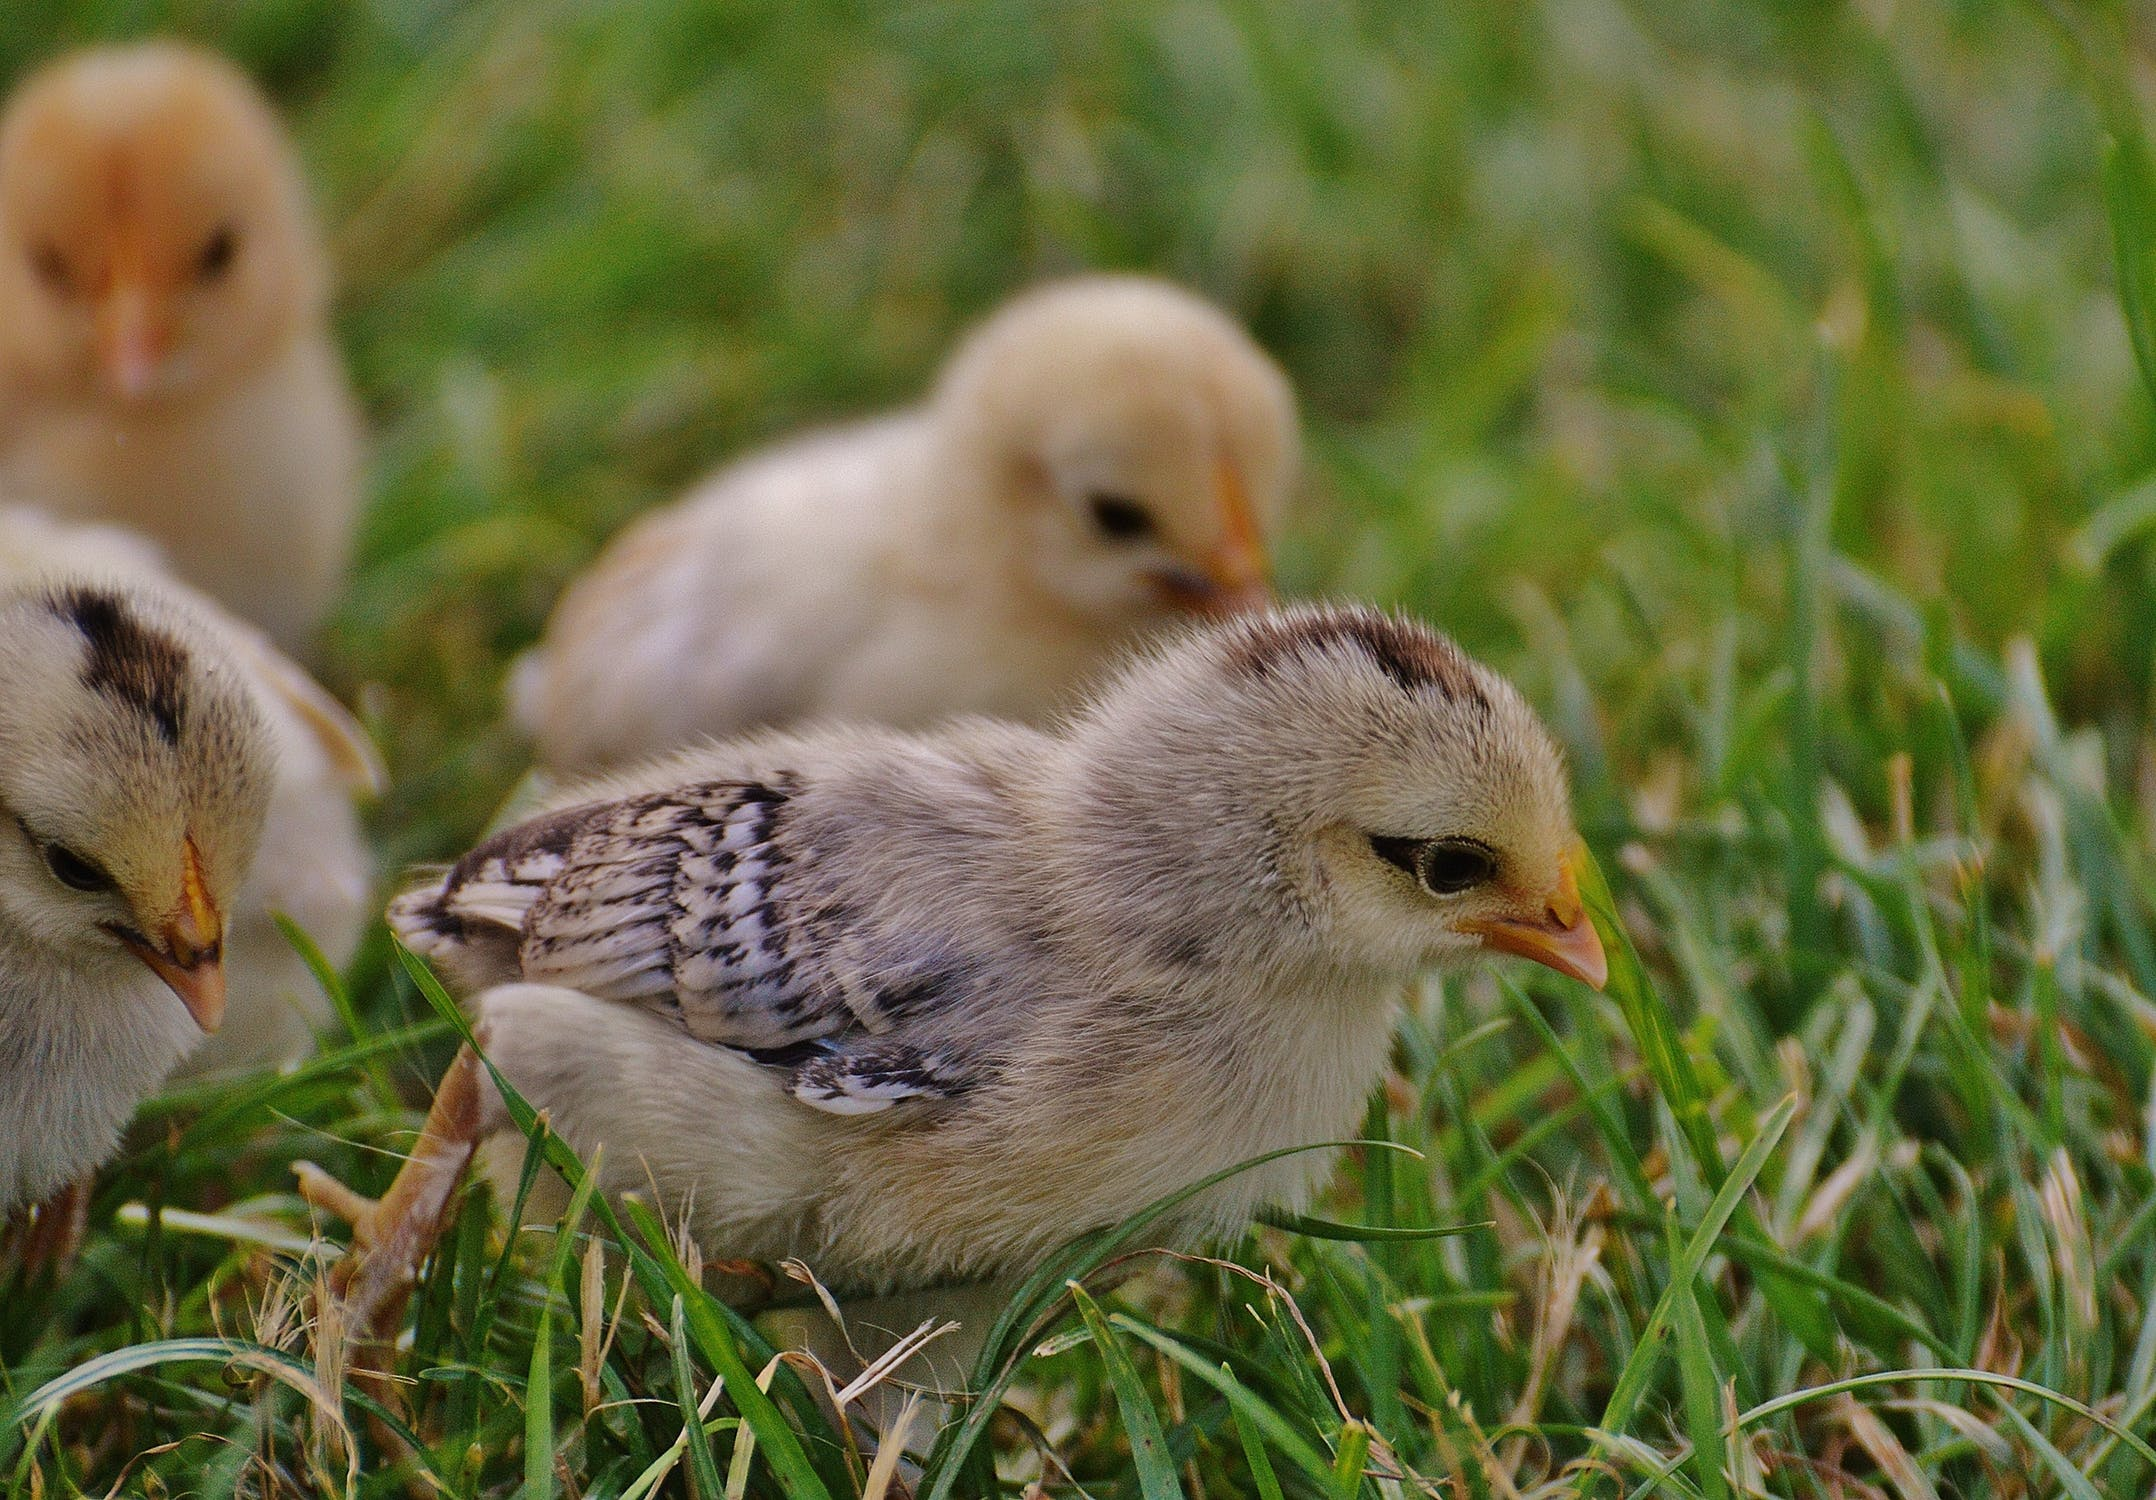 chicks-chicken-small-poultry-162118.jpeg